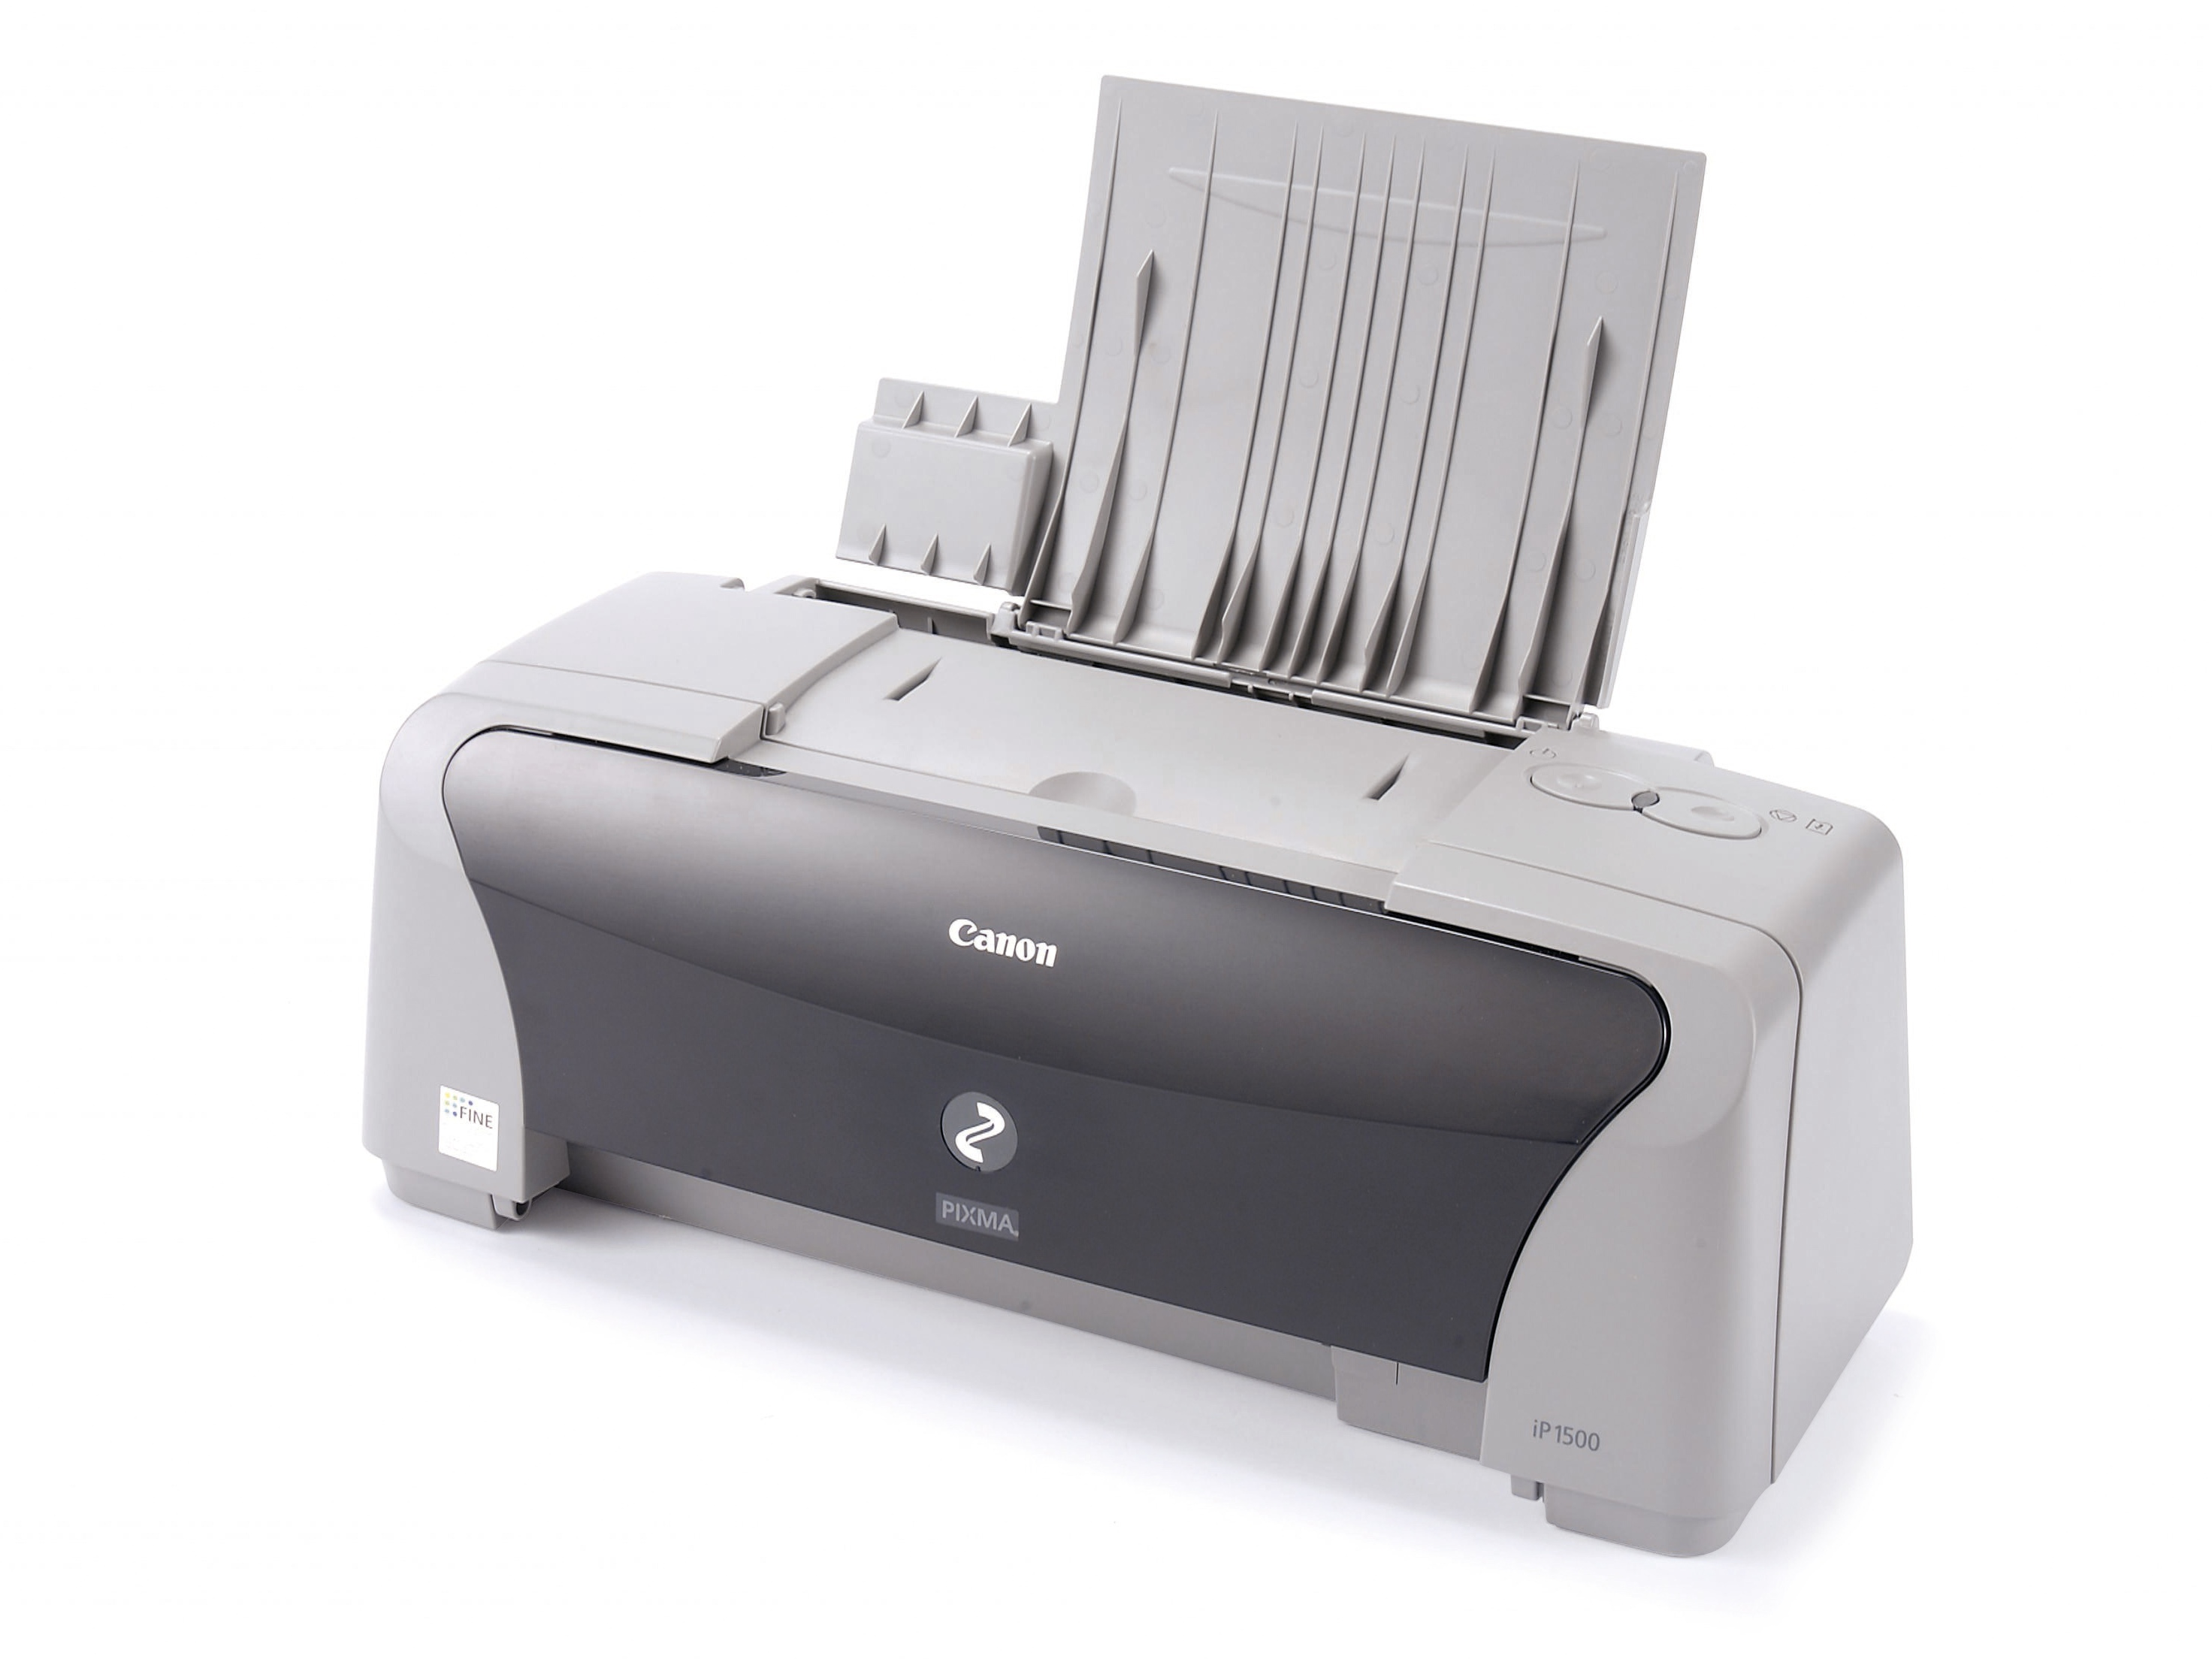 Printer Canon iP1500/iP1600 Driver Arch Linux Installation Guide